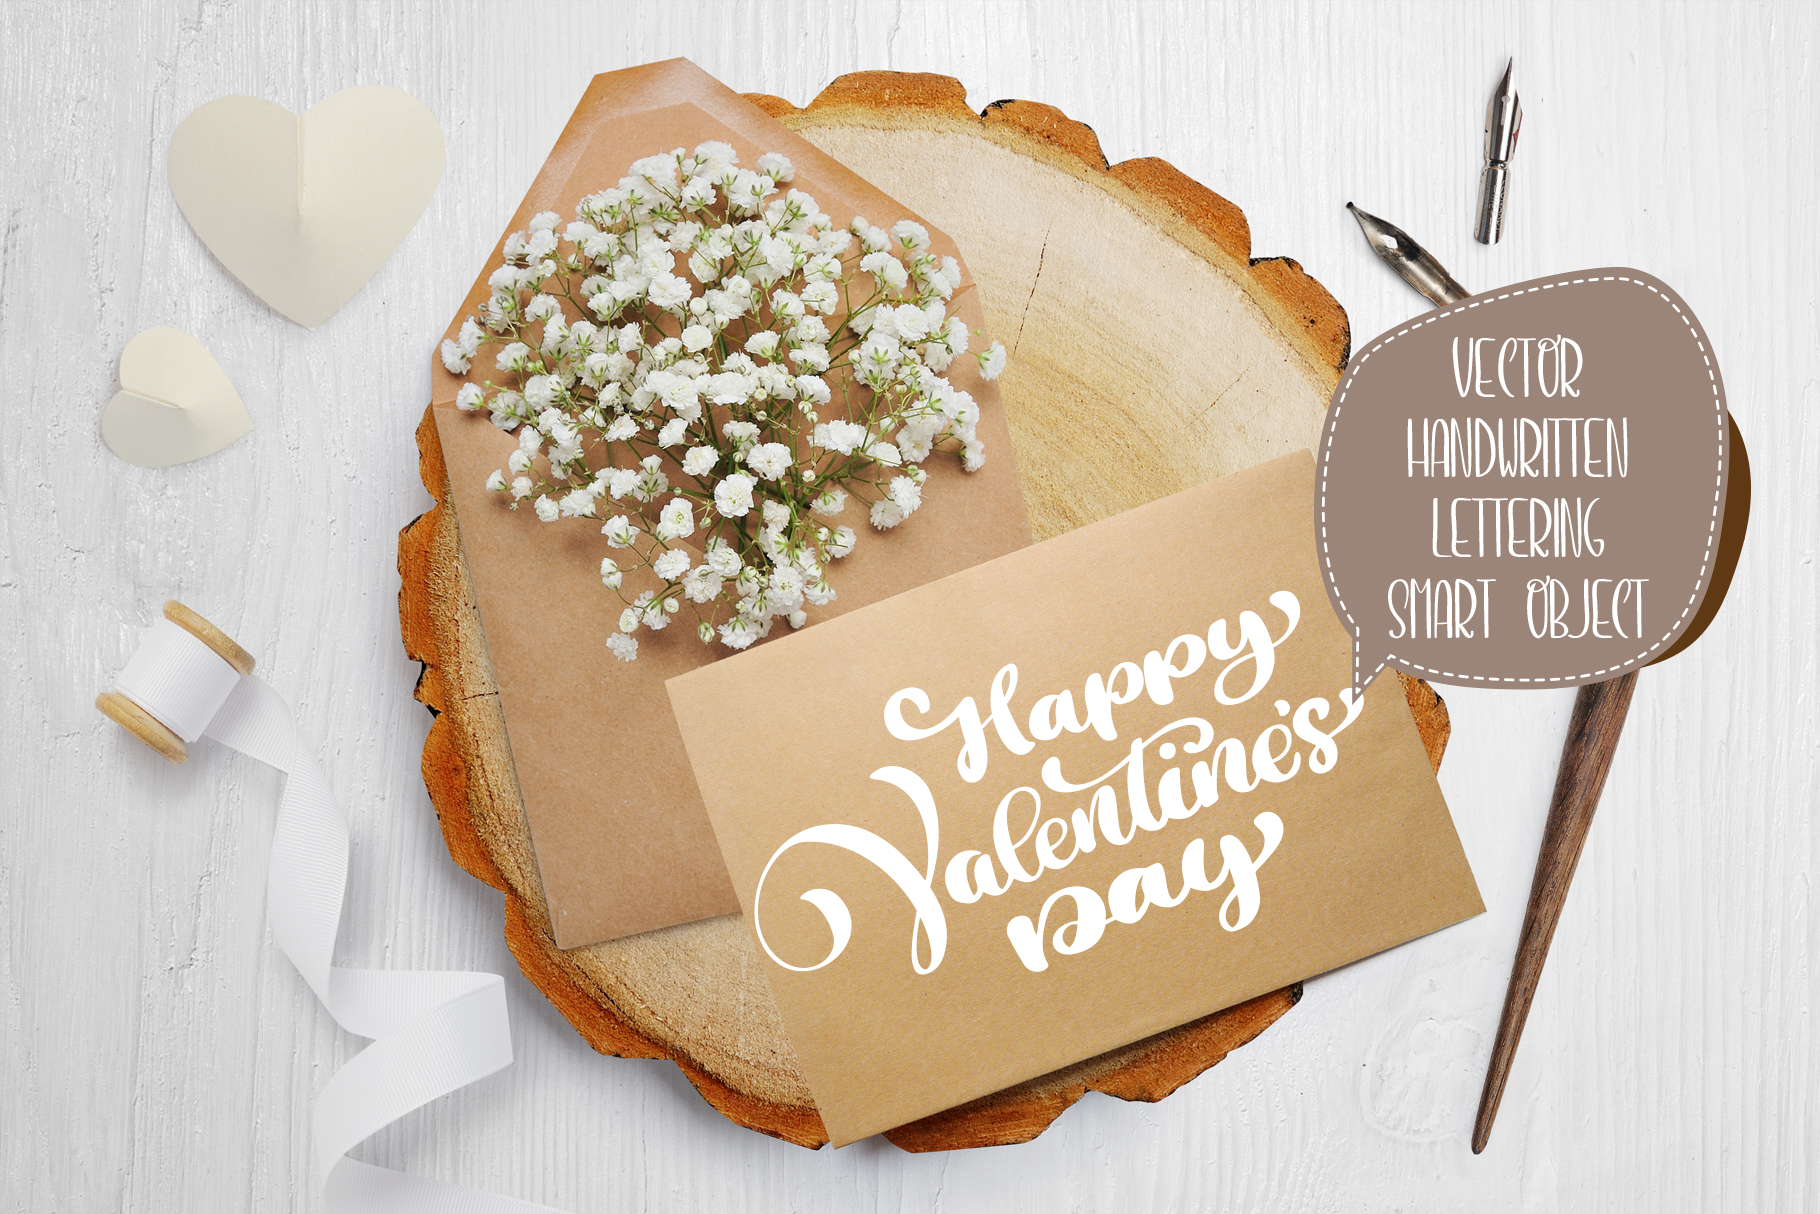 Valentines Day PSD Layered Scene Graphic Product Mockups By Happy Letters - Image 4